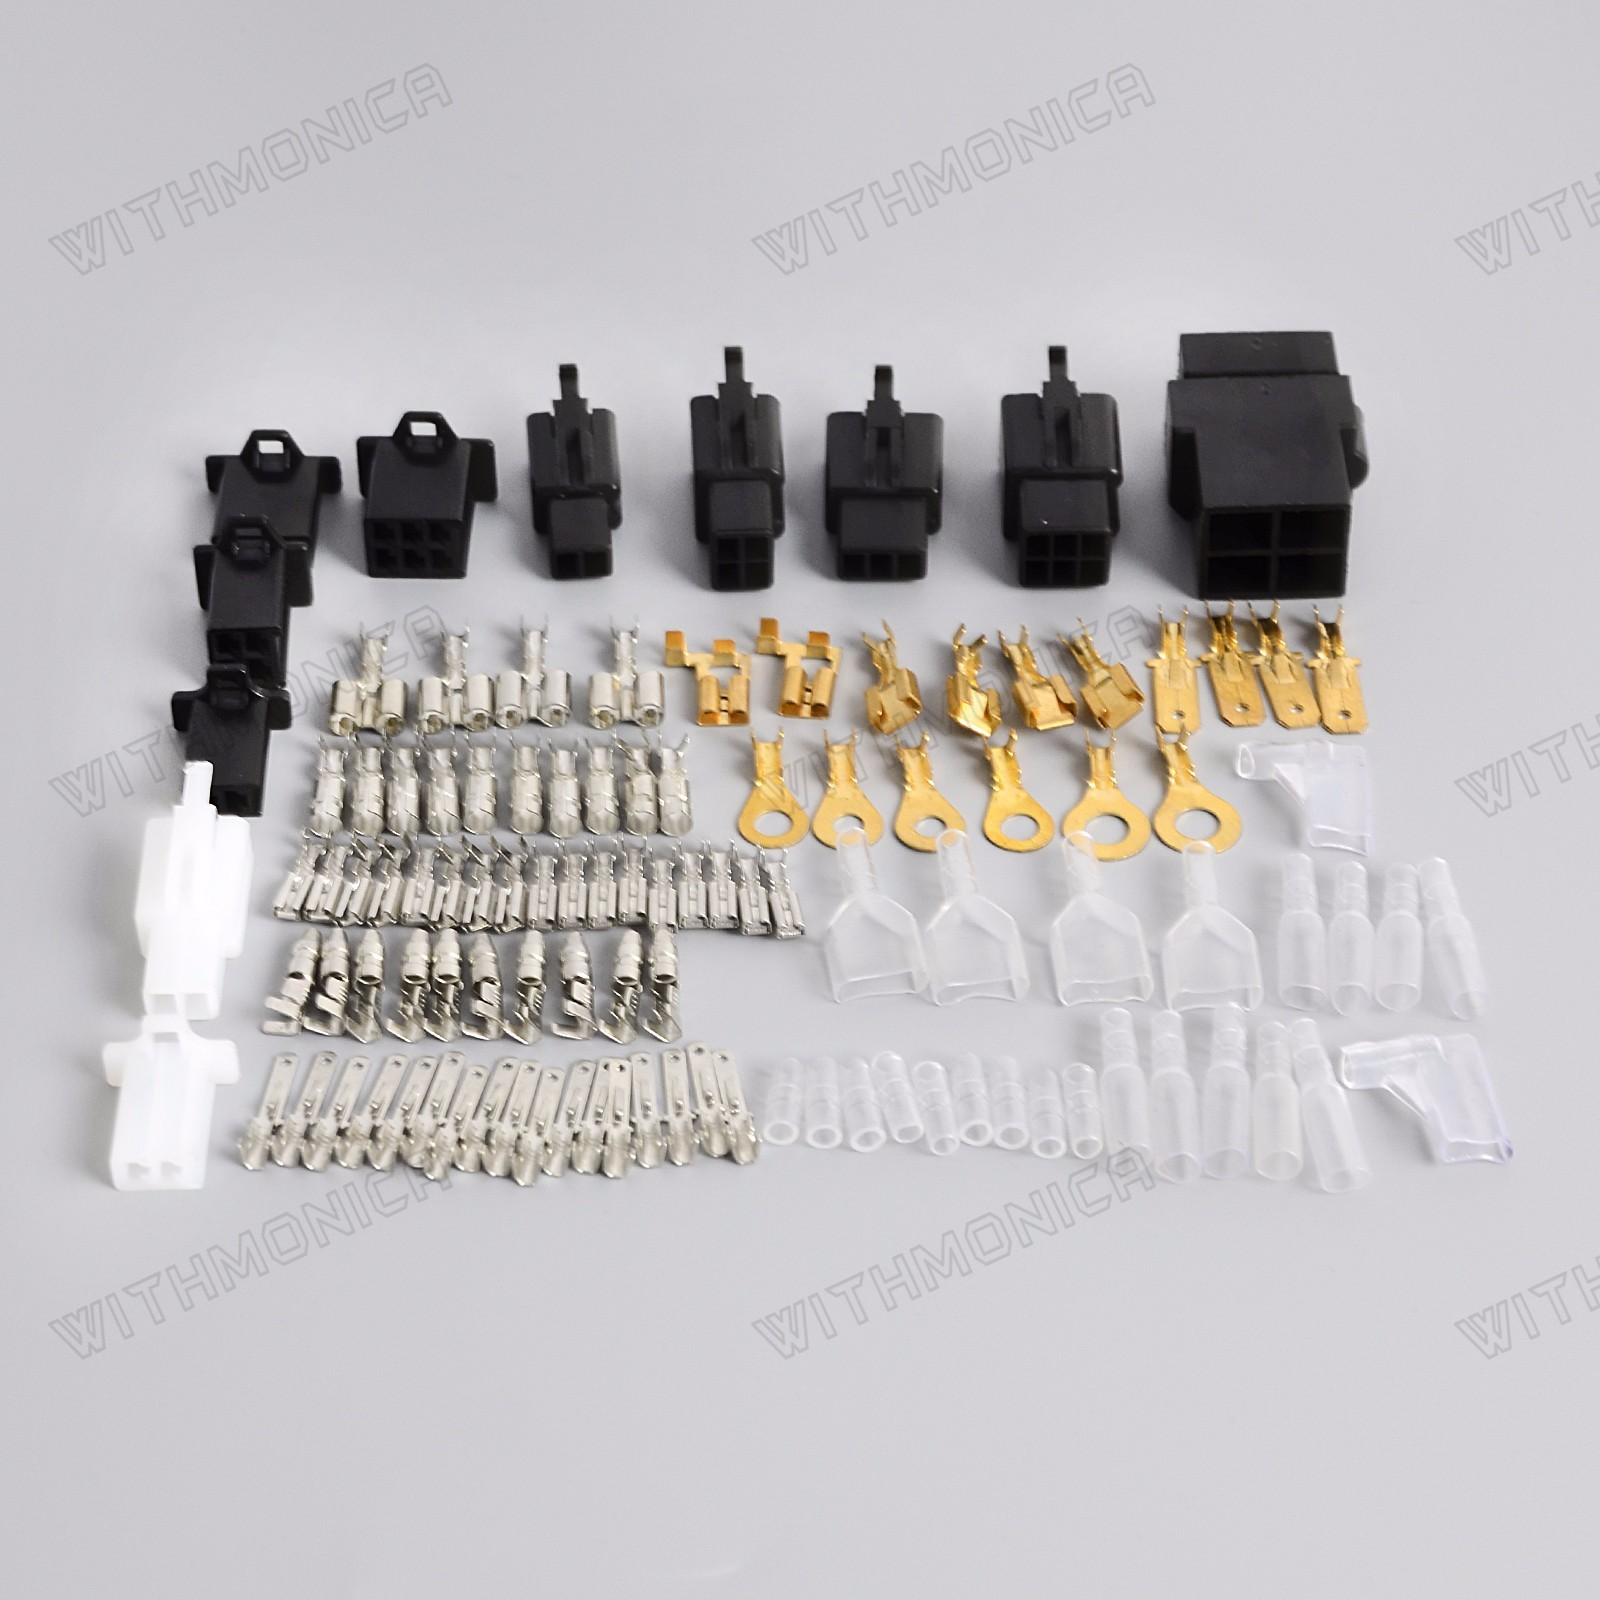 Universal Motorcycle Electrical Wiring Harness Repair Connector Kit Auto Plugs Bullet